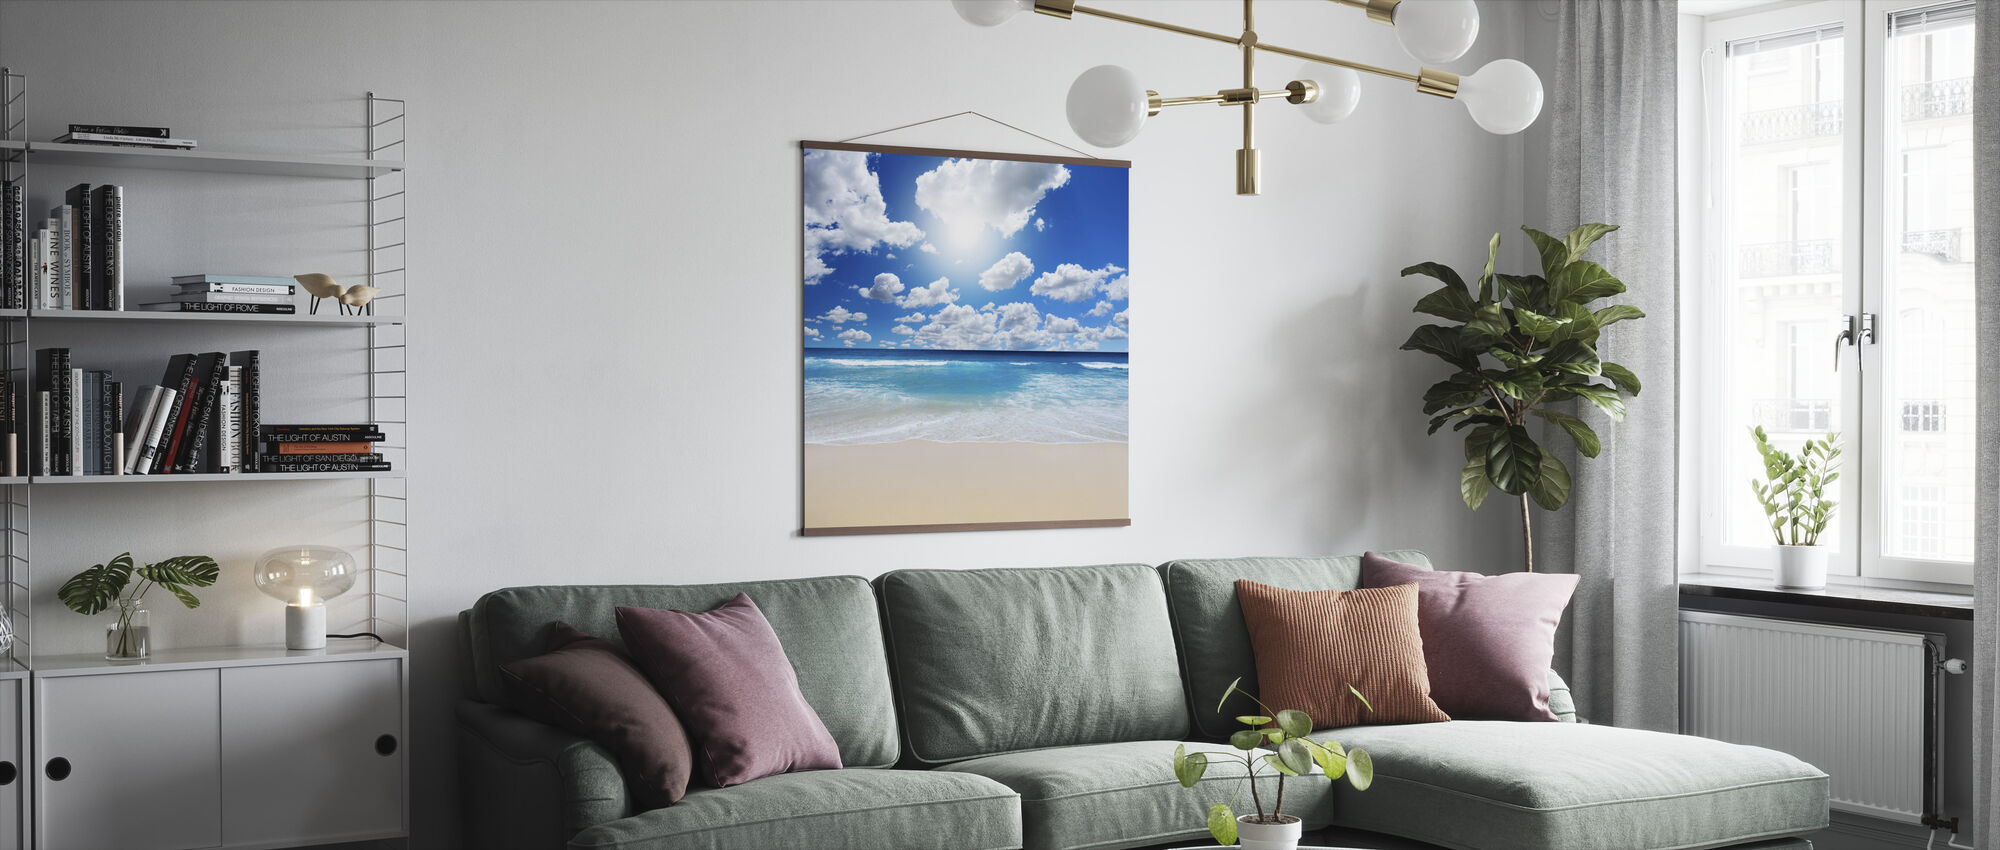 Summertime at the Beach - Poster - Living Room